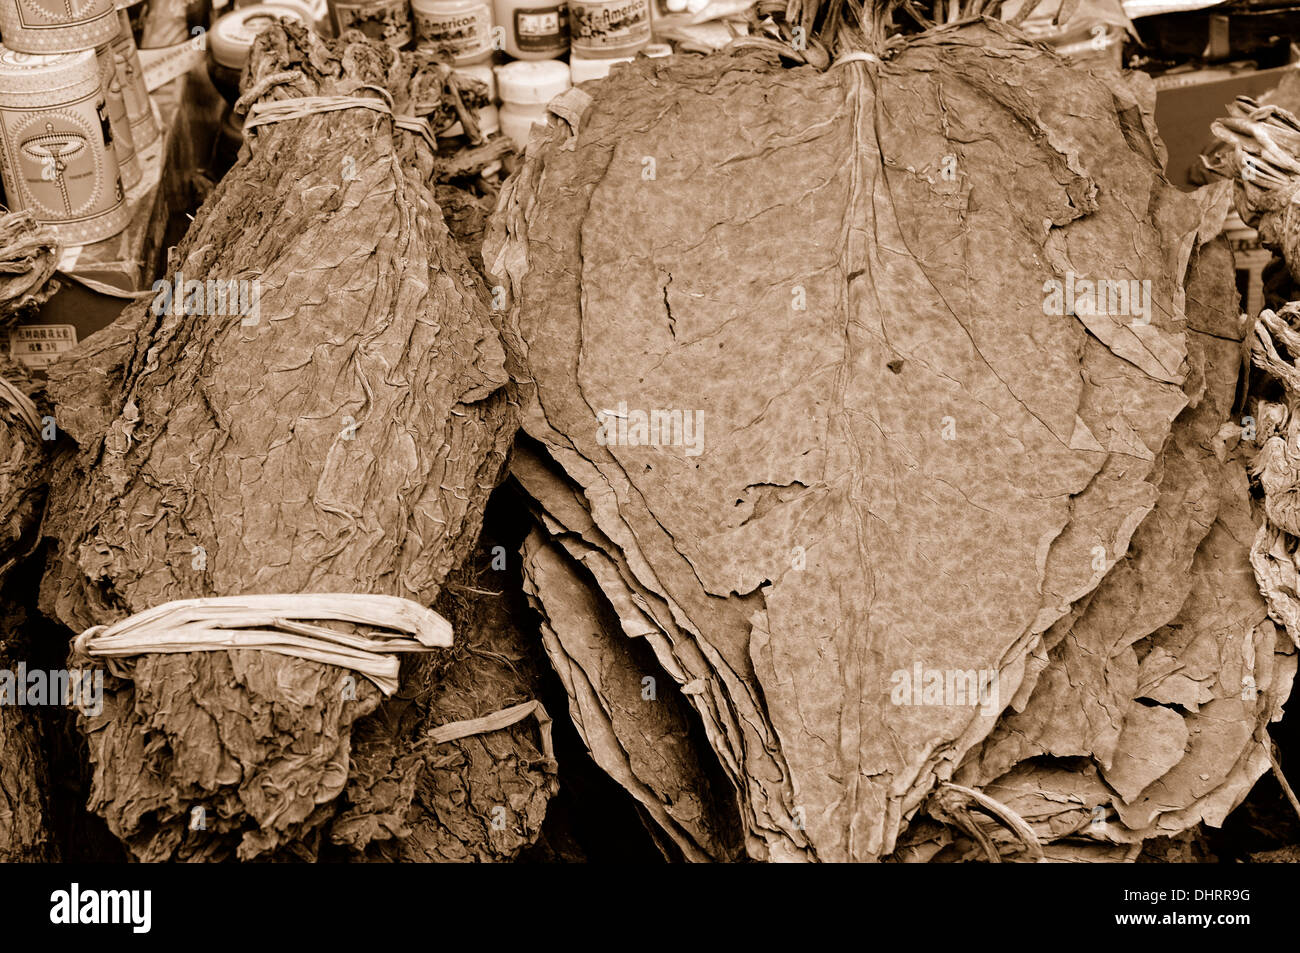 dry tobacco leaves Lhasa market sepia - Stock Image